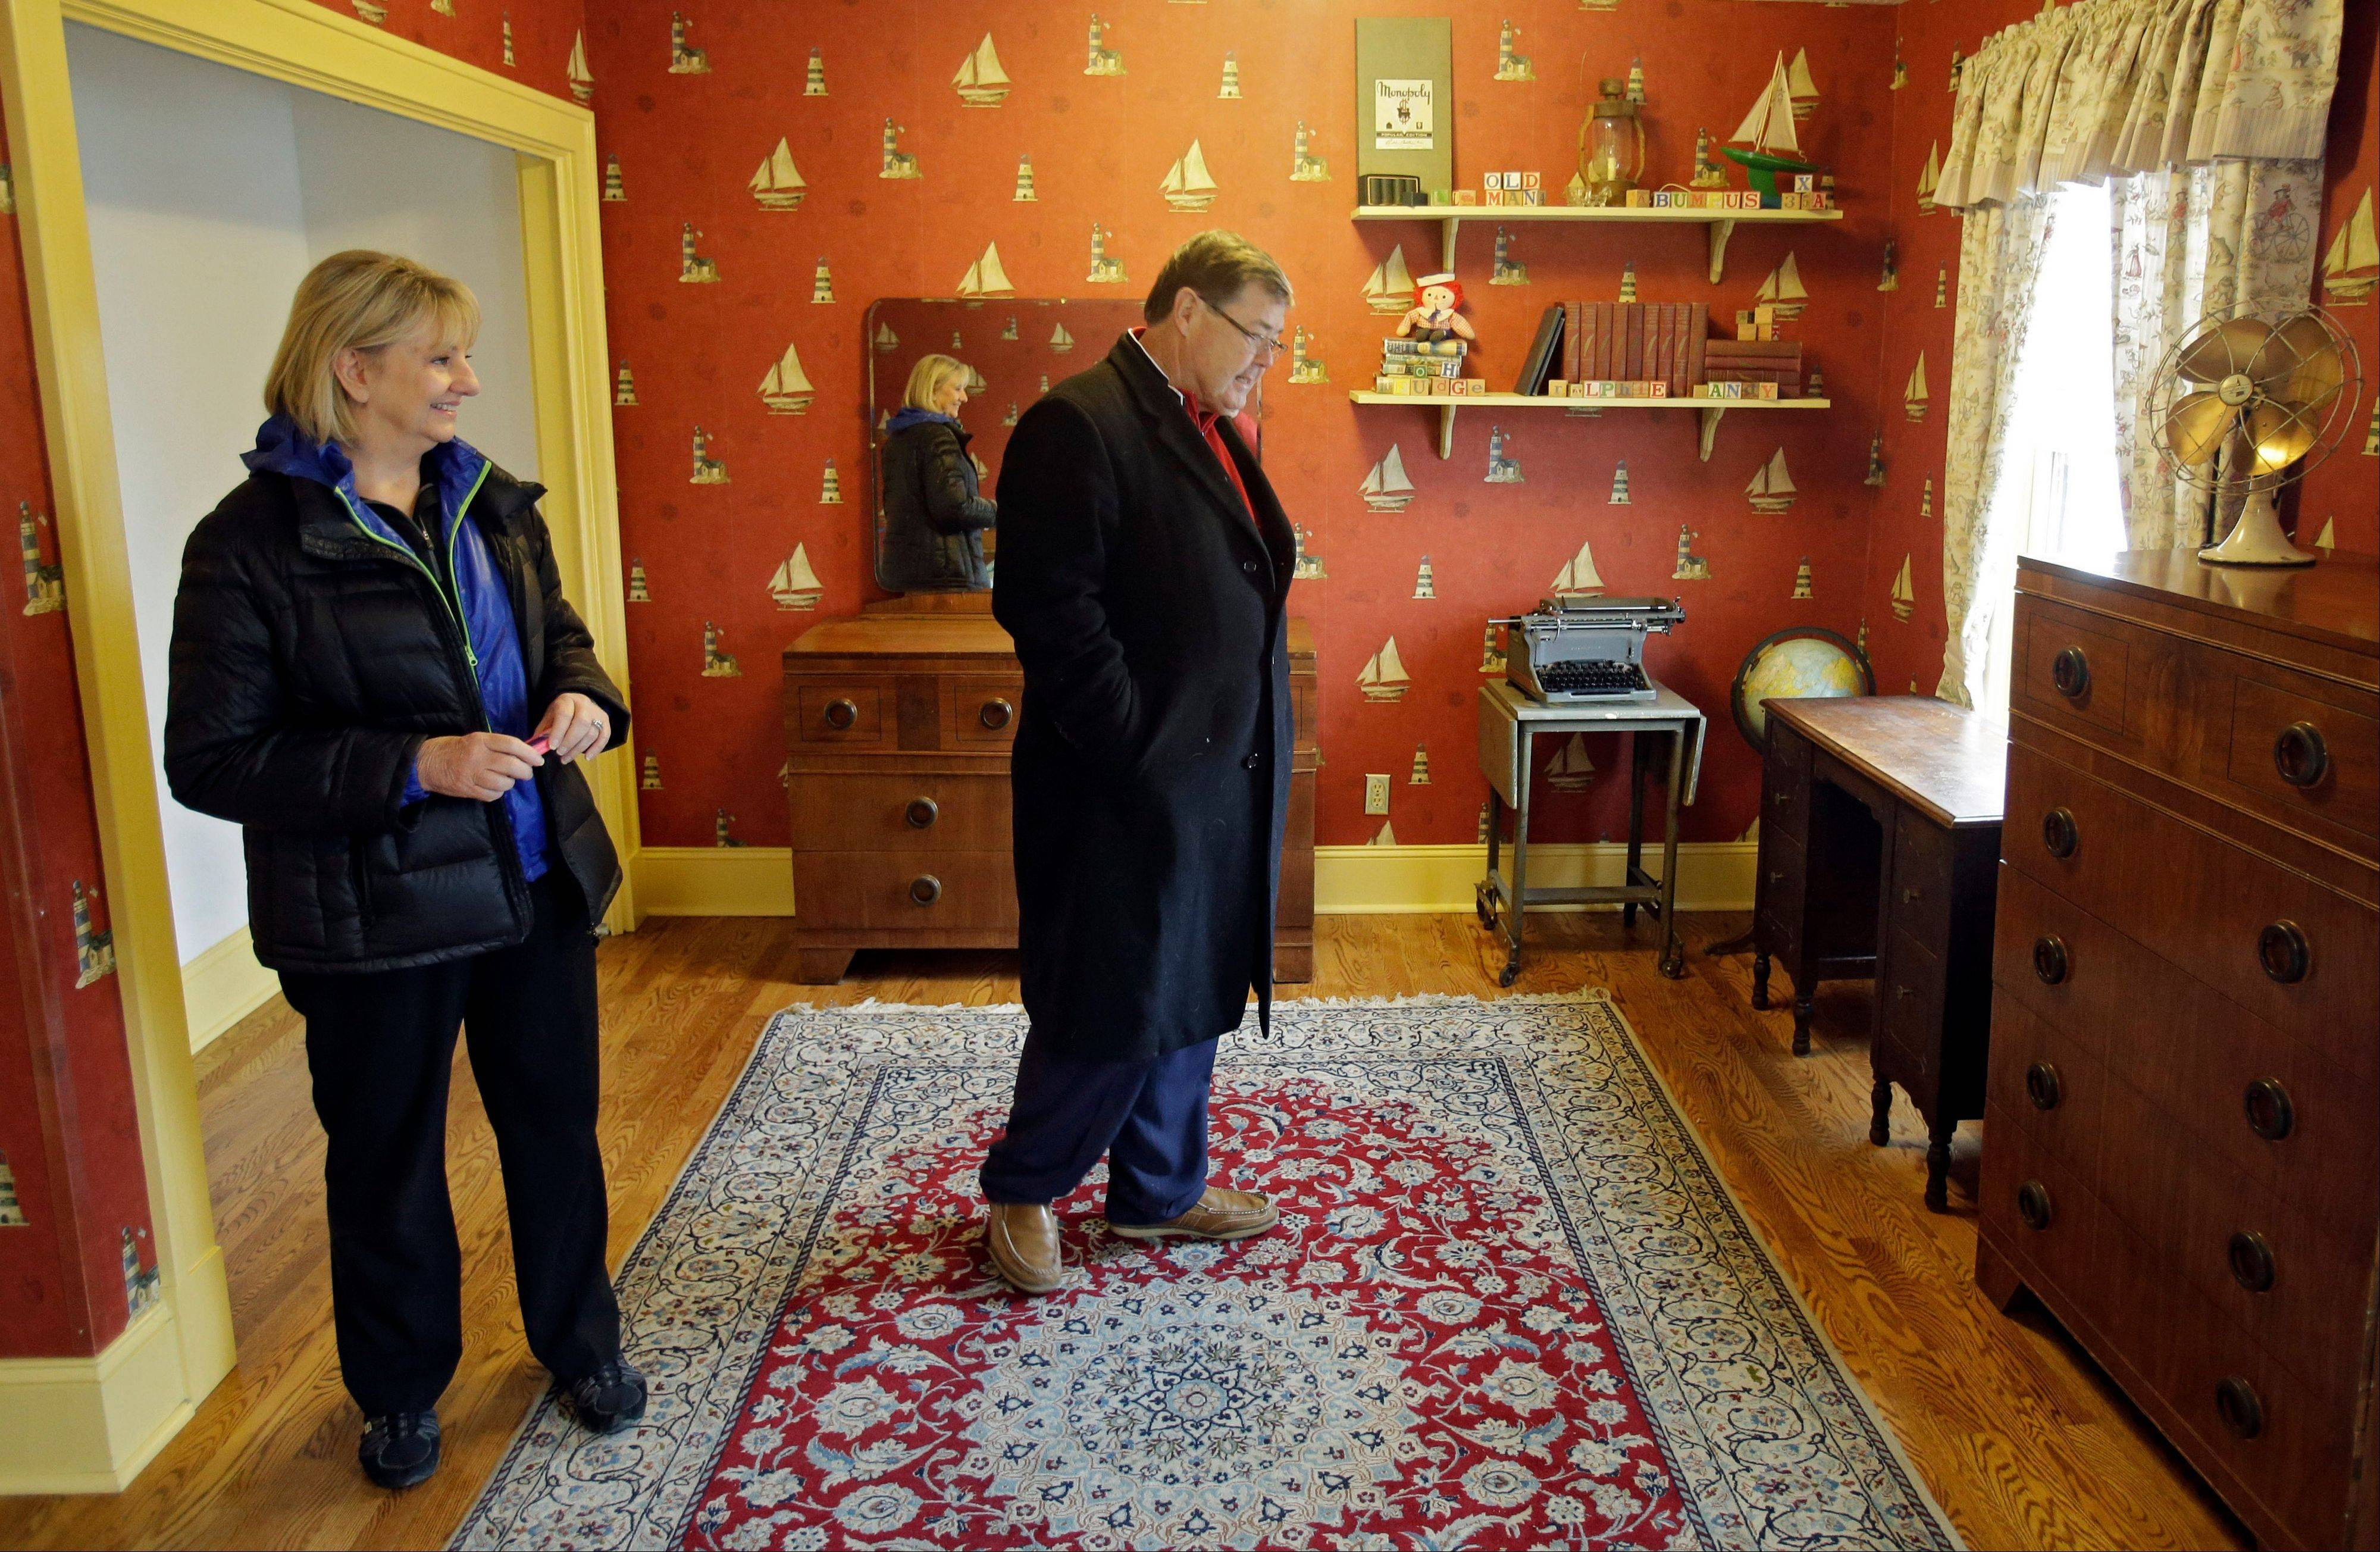 "In this Nov. 21, 2013, photo, Judy and Michael Paulson, from Plano, Texas, view Ralphie's room in the Cleveland house where the 1983 movie ""A Christmas Story"" was filmed. Interest in tours of the house, as well as the adjacent museum, is expected to increase during the 30th anniversary of the quirky holiday film."